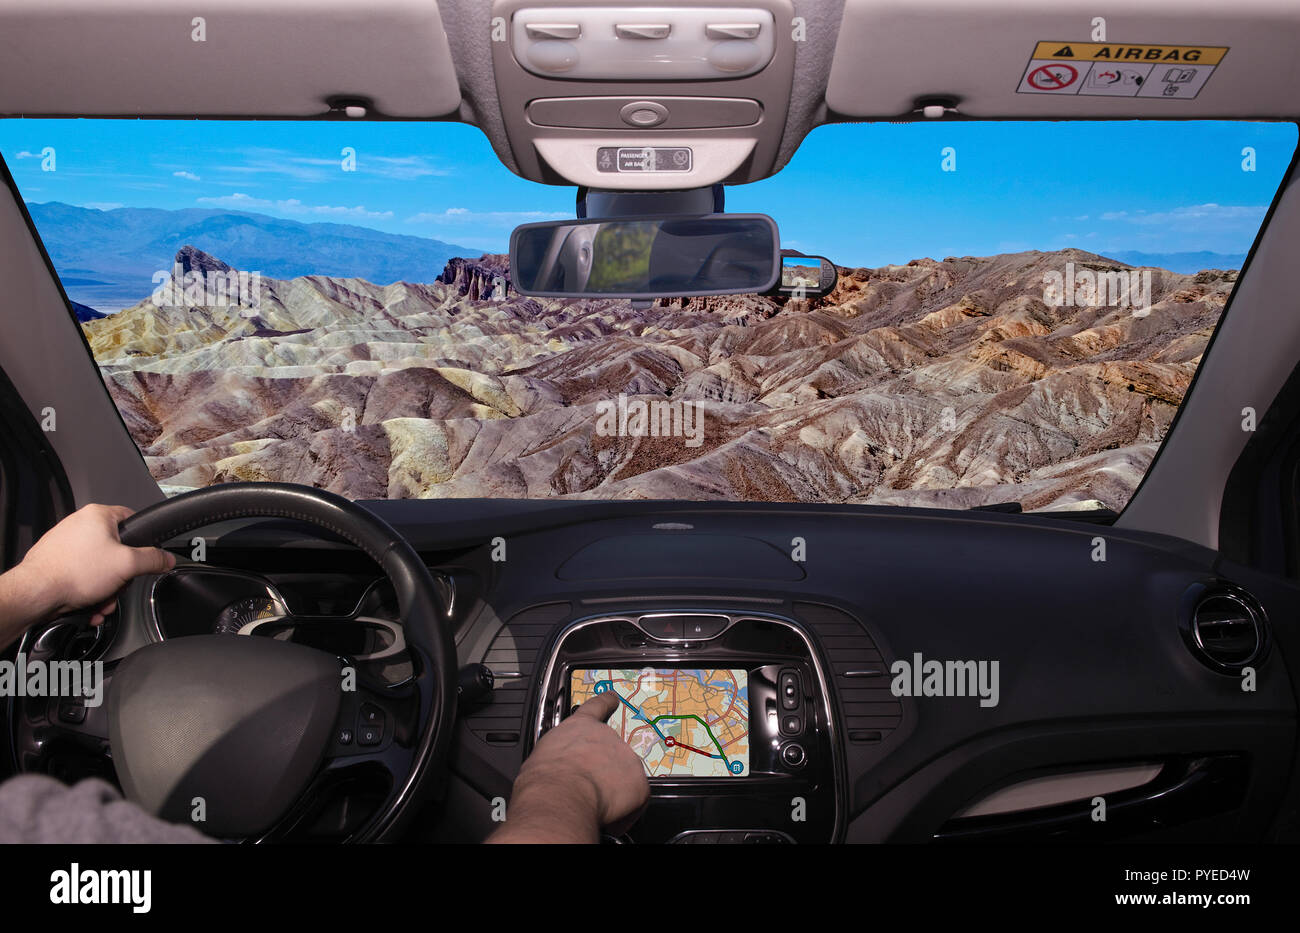 Driving a car while using the touch screen of a GPS navigation system towards Zabriskie Point, scenic place in Death Valley, California, USA - Stock Image